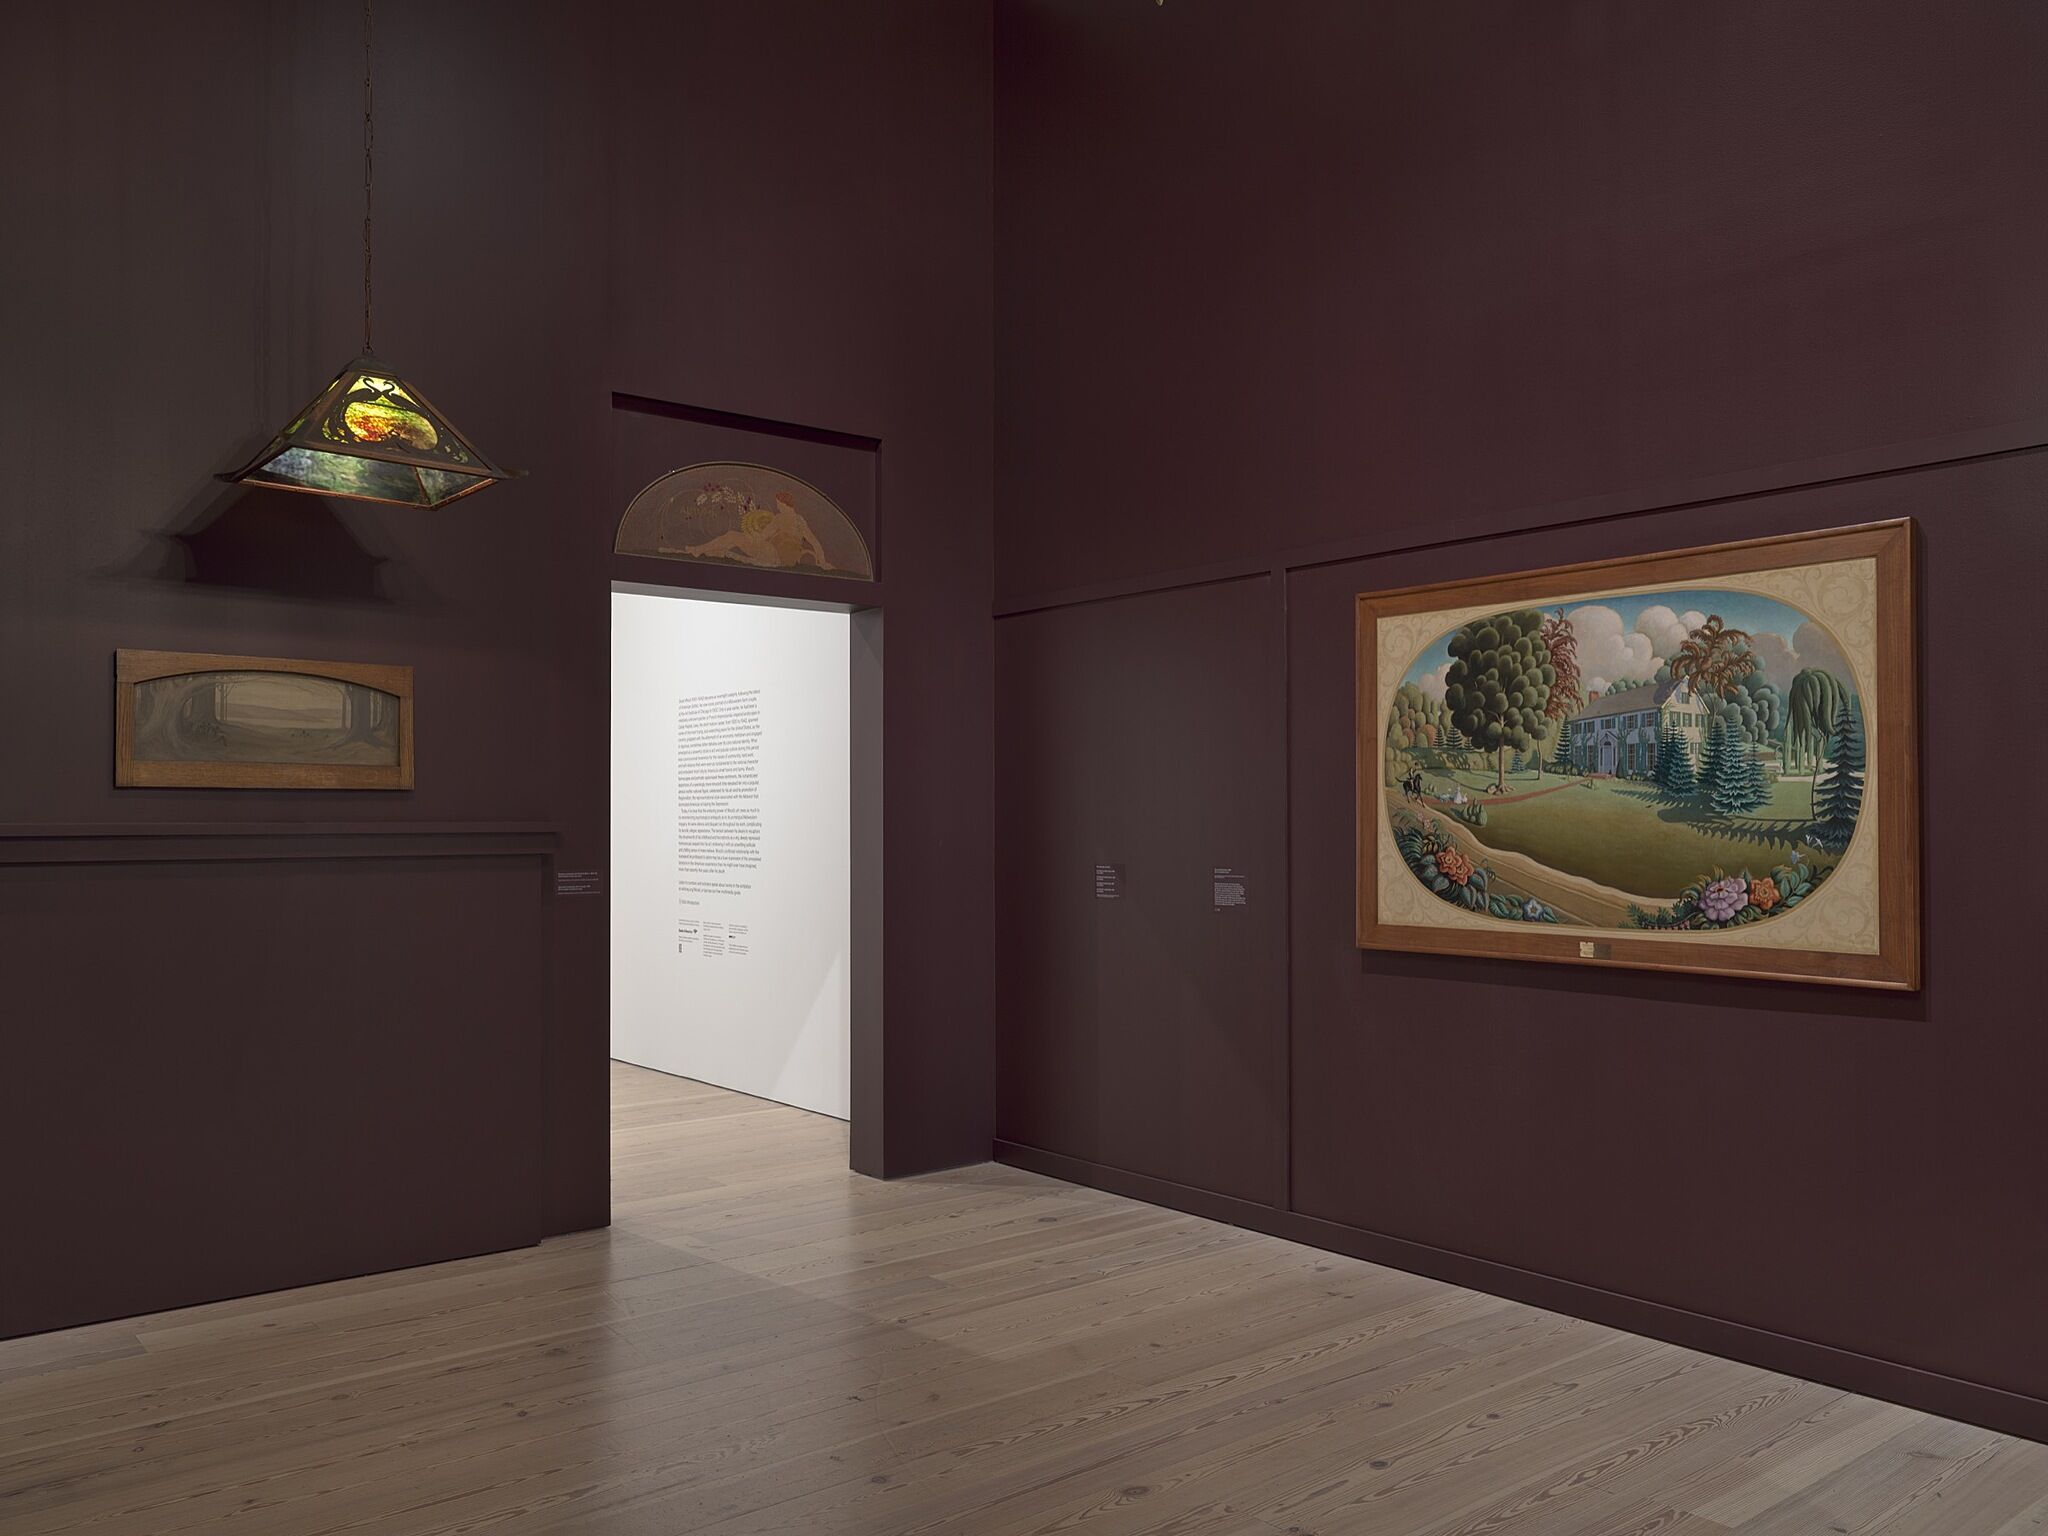 A gallery space with paintings and an ornate ceiling light.